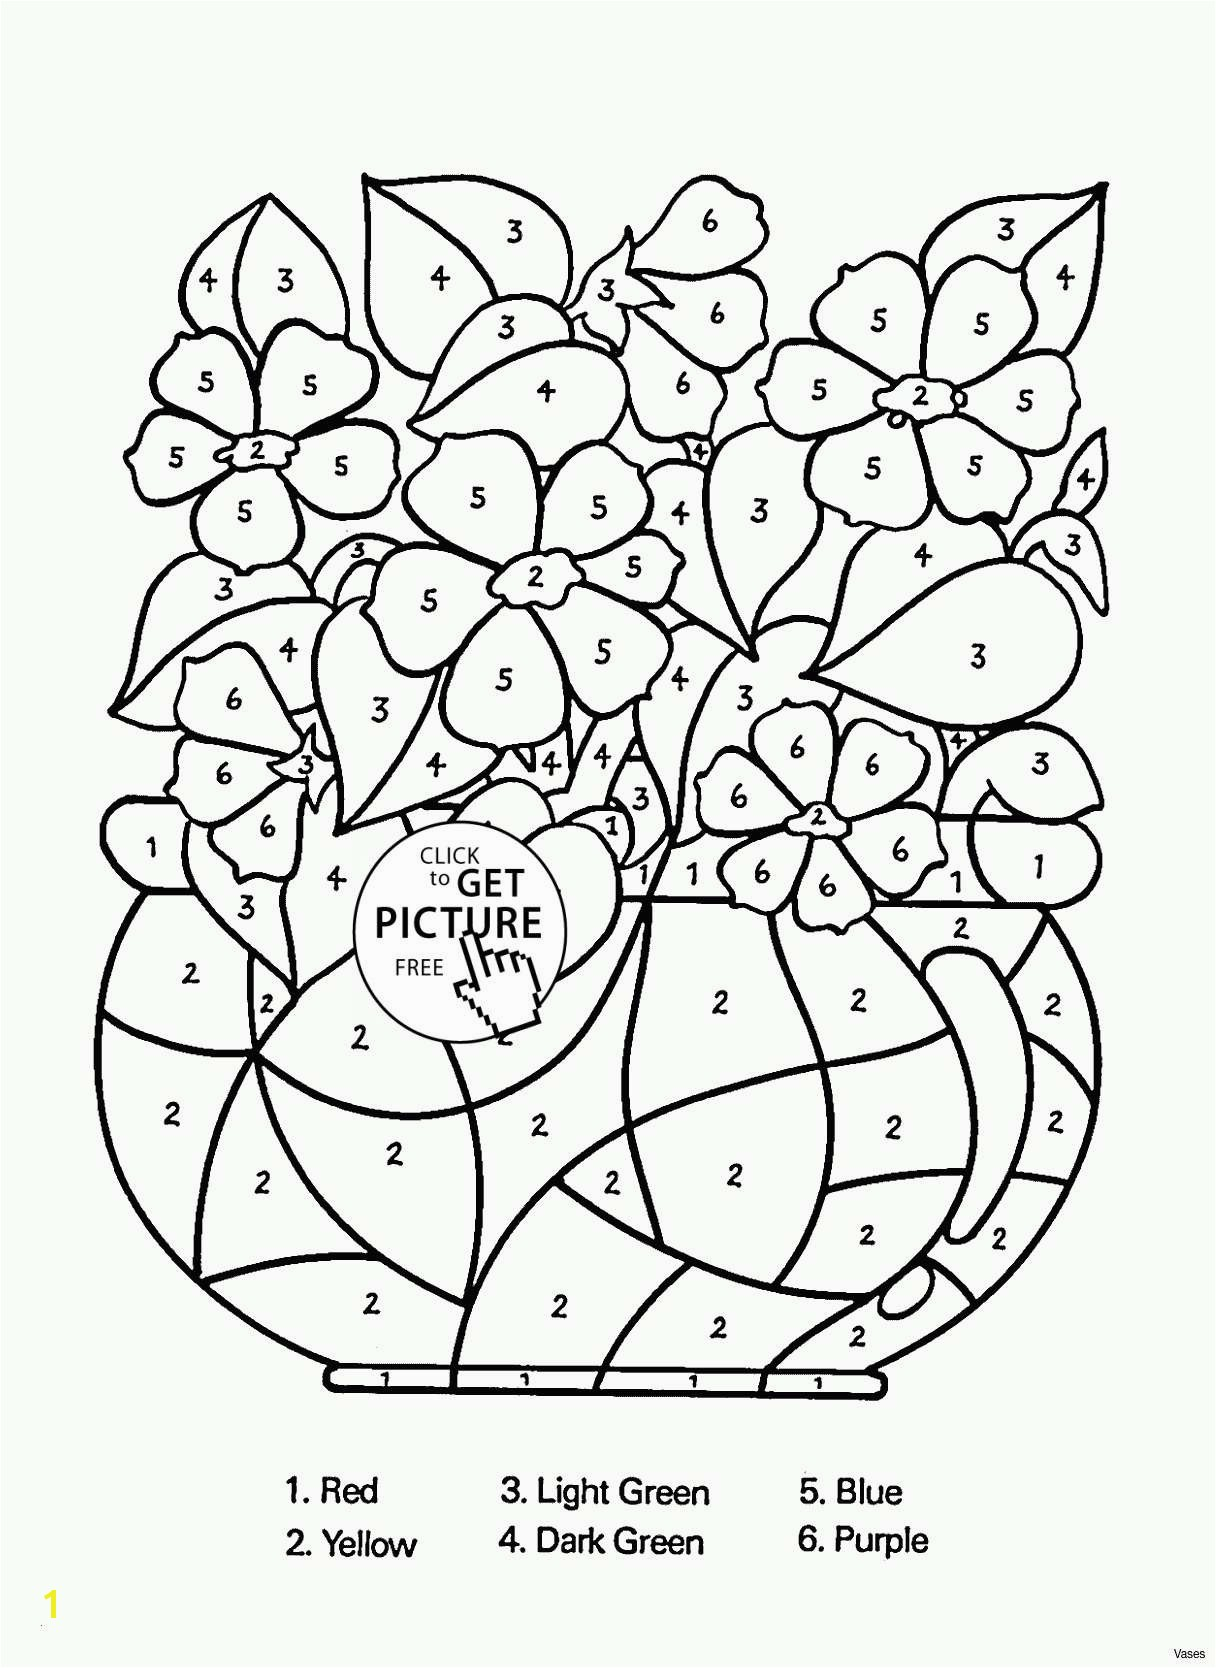 Detailed Snowflake Coloring Pages Best Free Coloring Pages Christmas Snowflakes Katesgrove